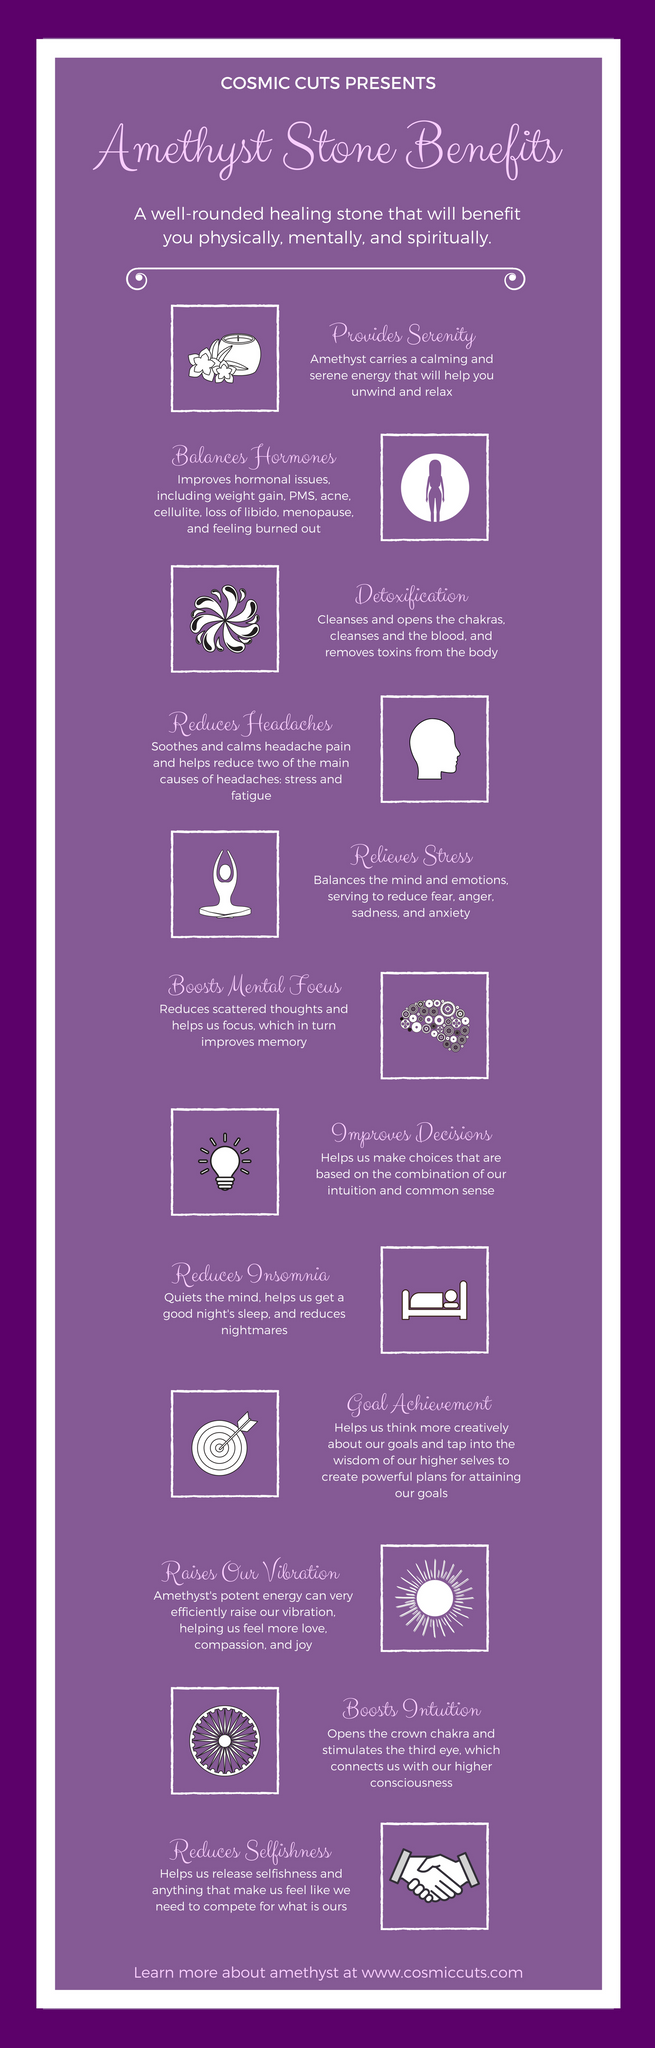 Amethyst Stone Benefits Infographic